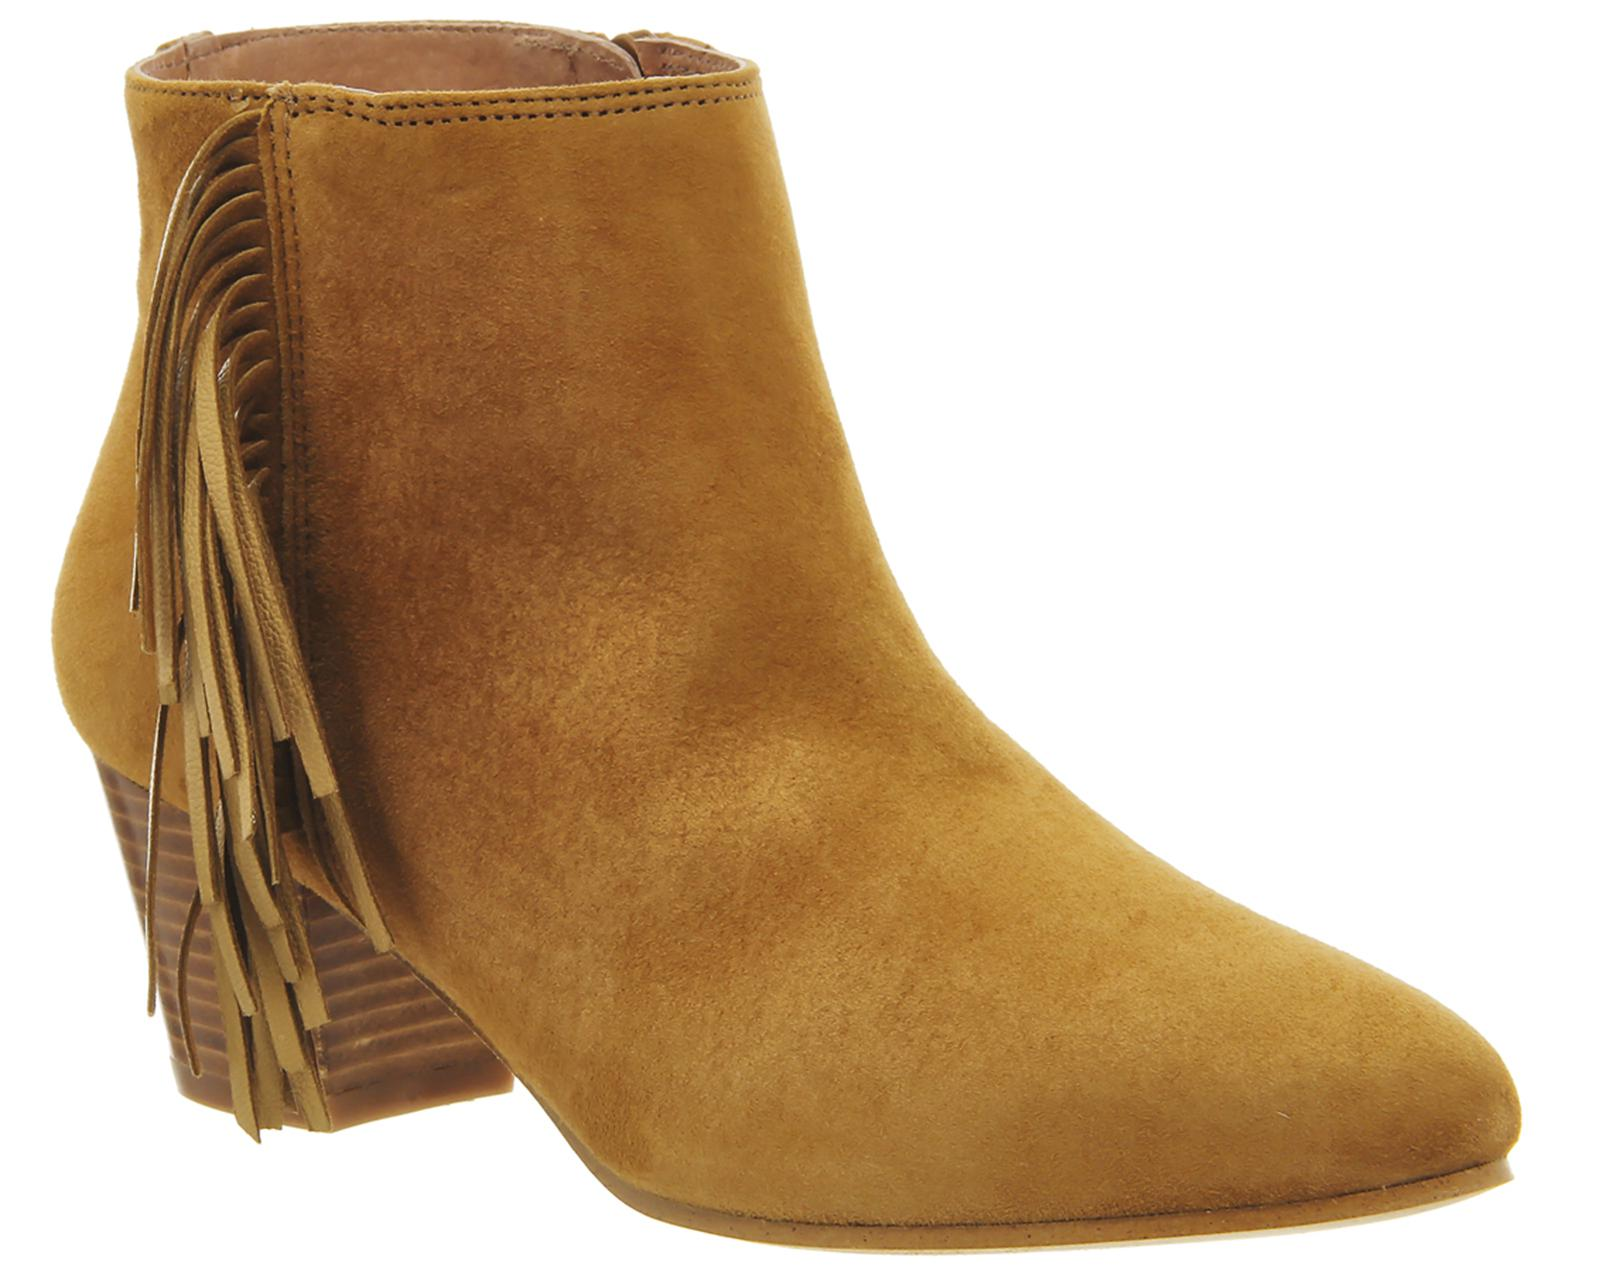 3150d29204980 Office Idaho Fringe Ankle Boots in Brown - Lyst